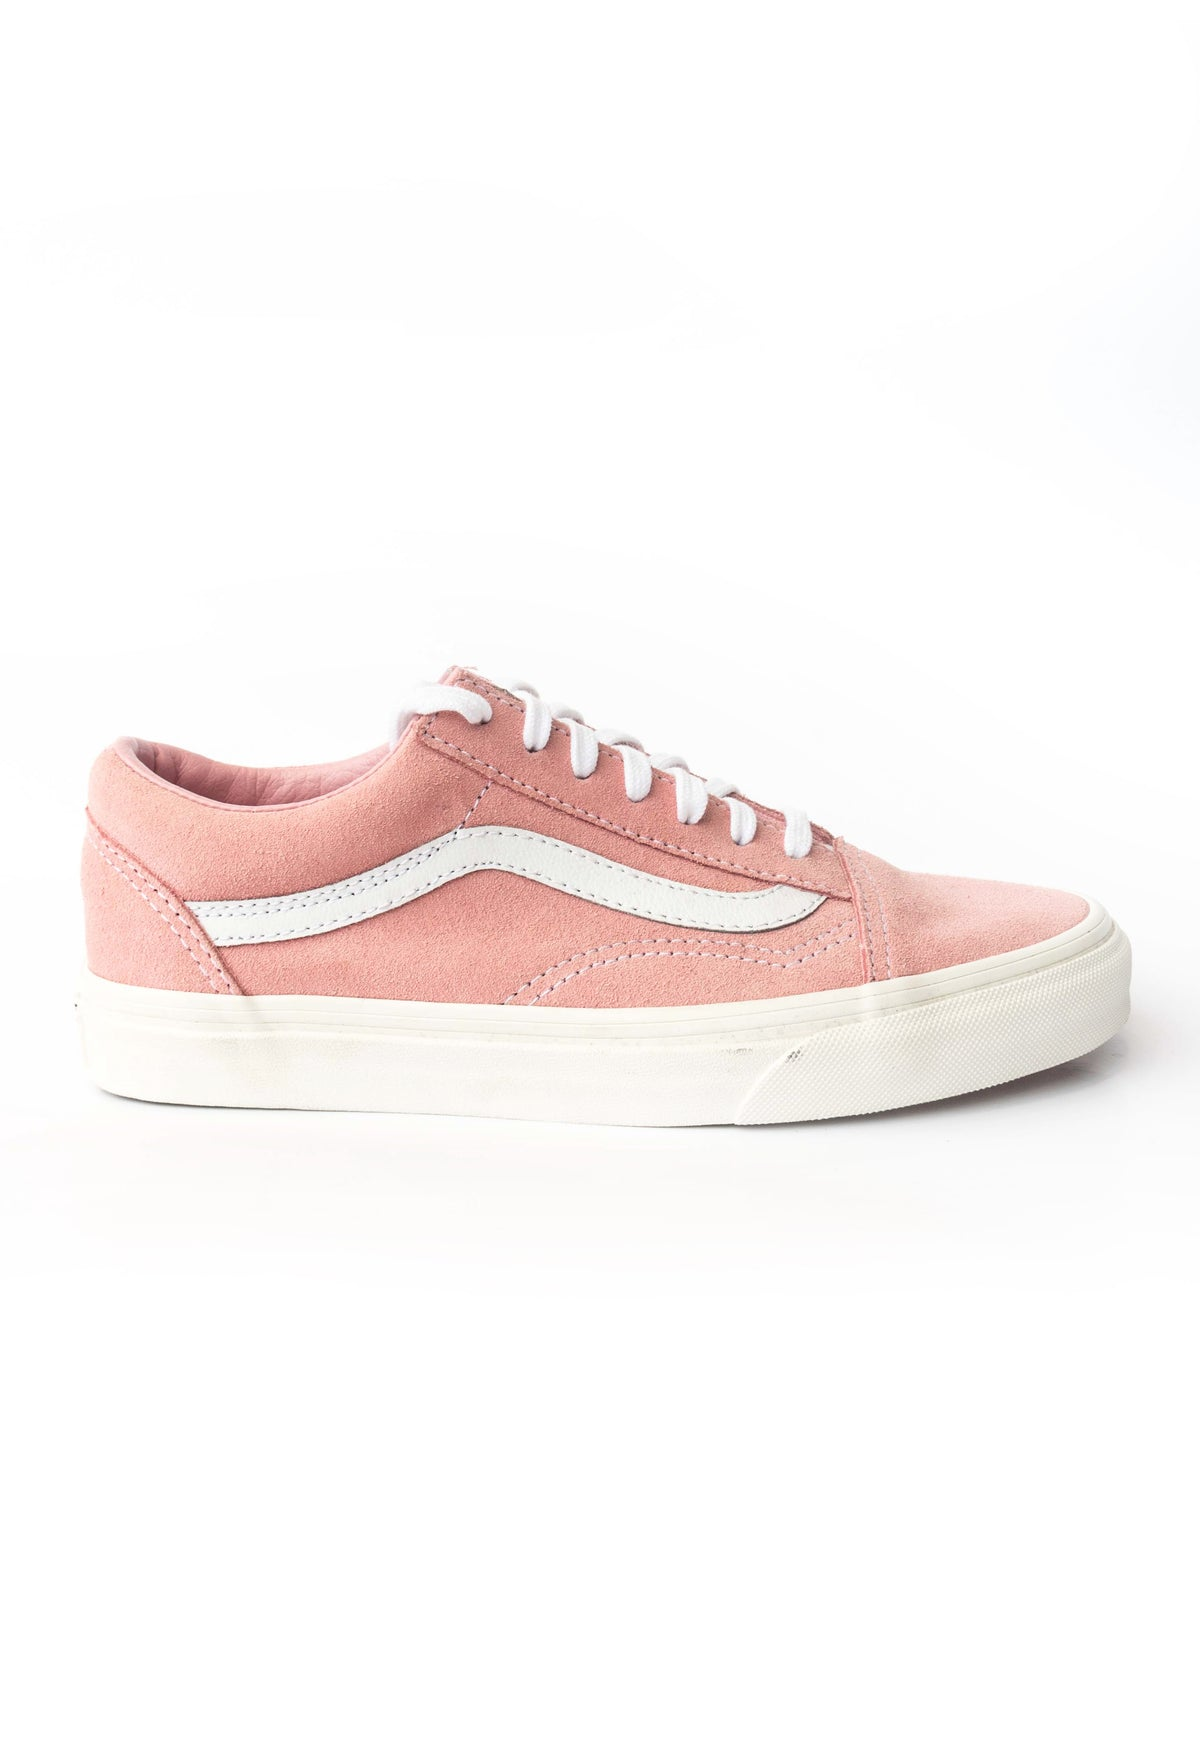 old skool vans sale nz